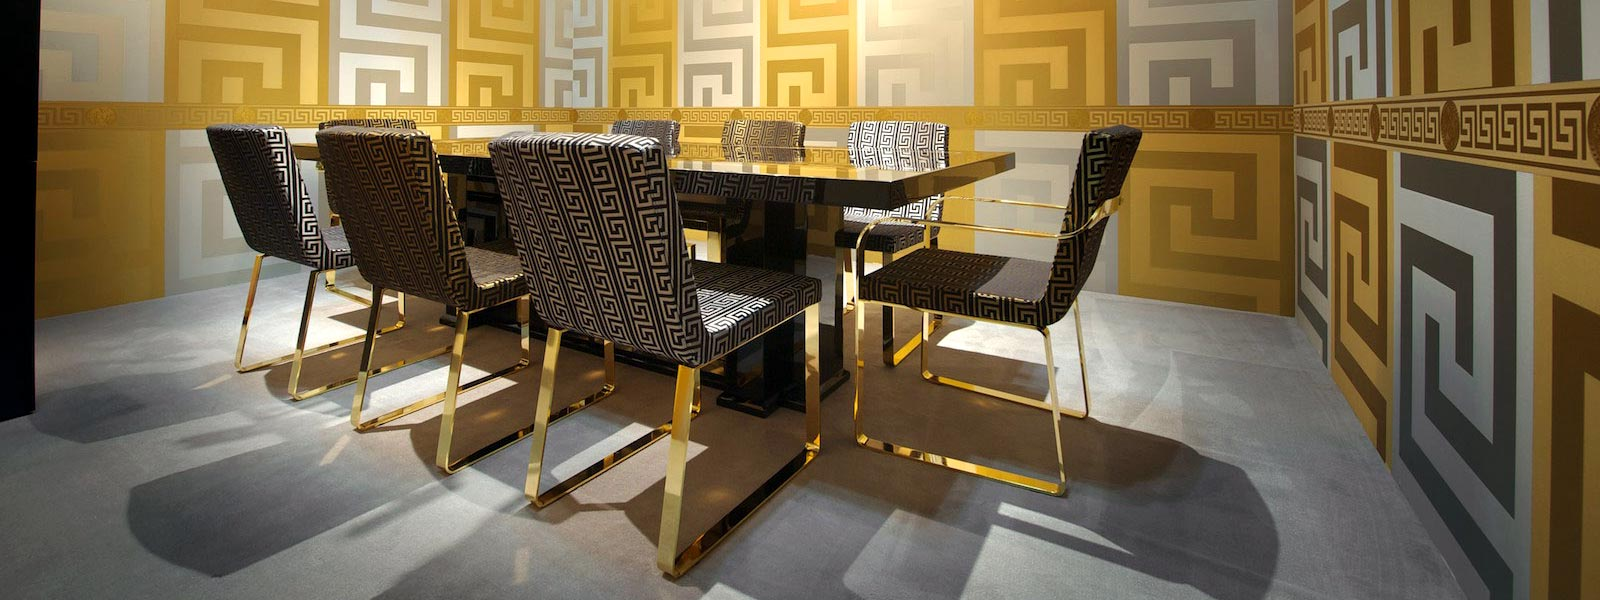 10001-Versace-Dining-Table-04.jpg